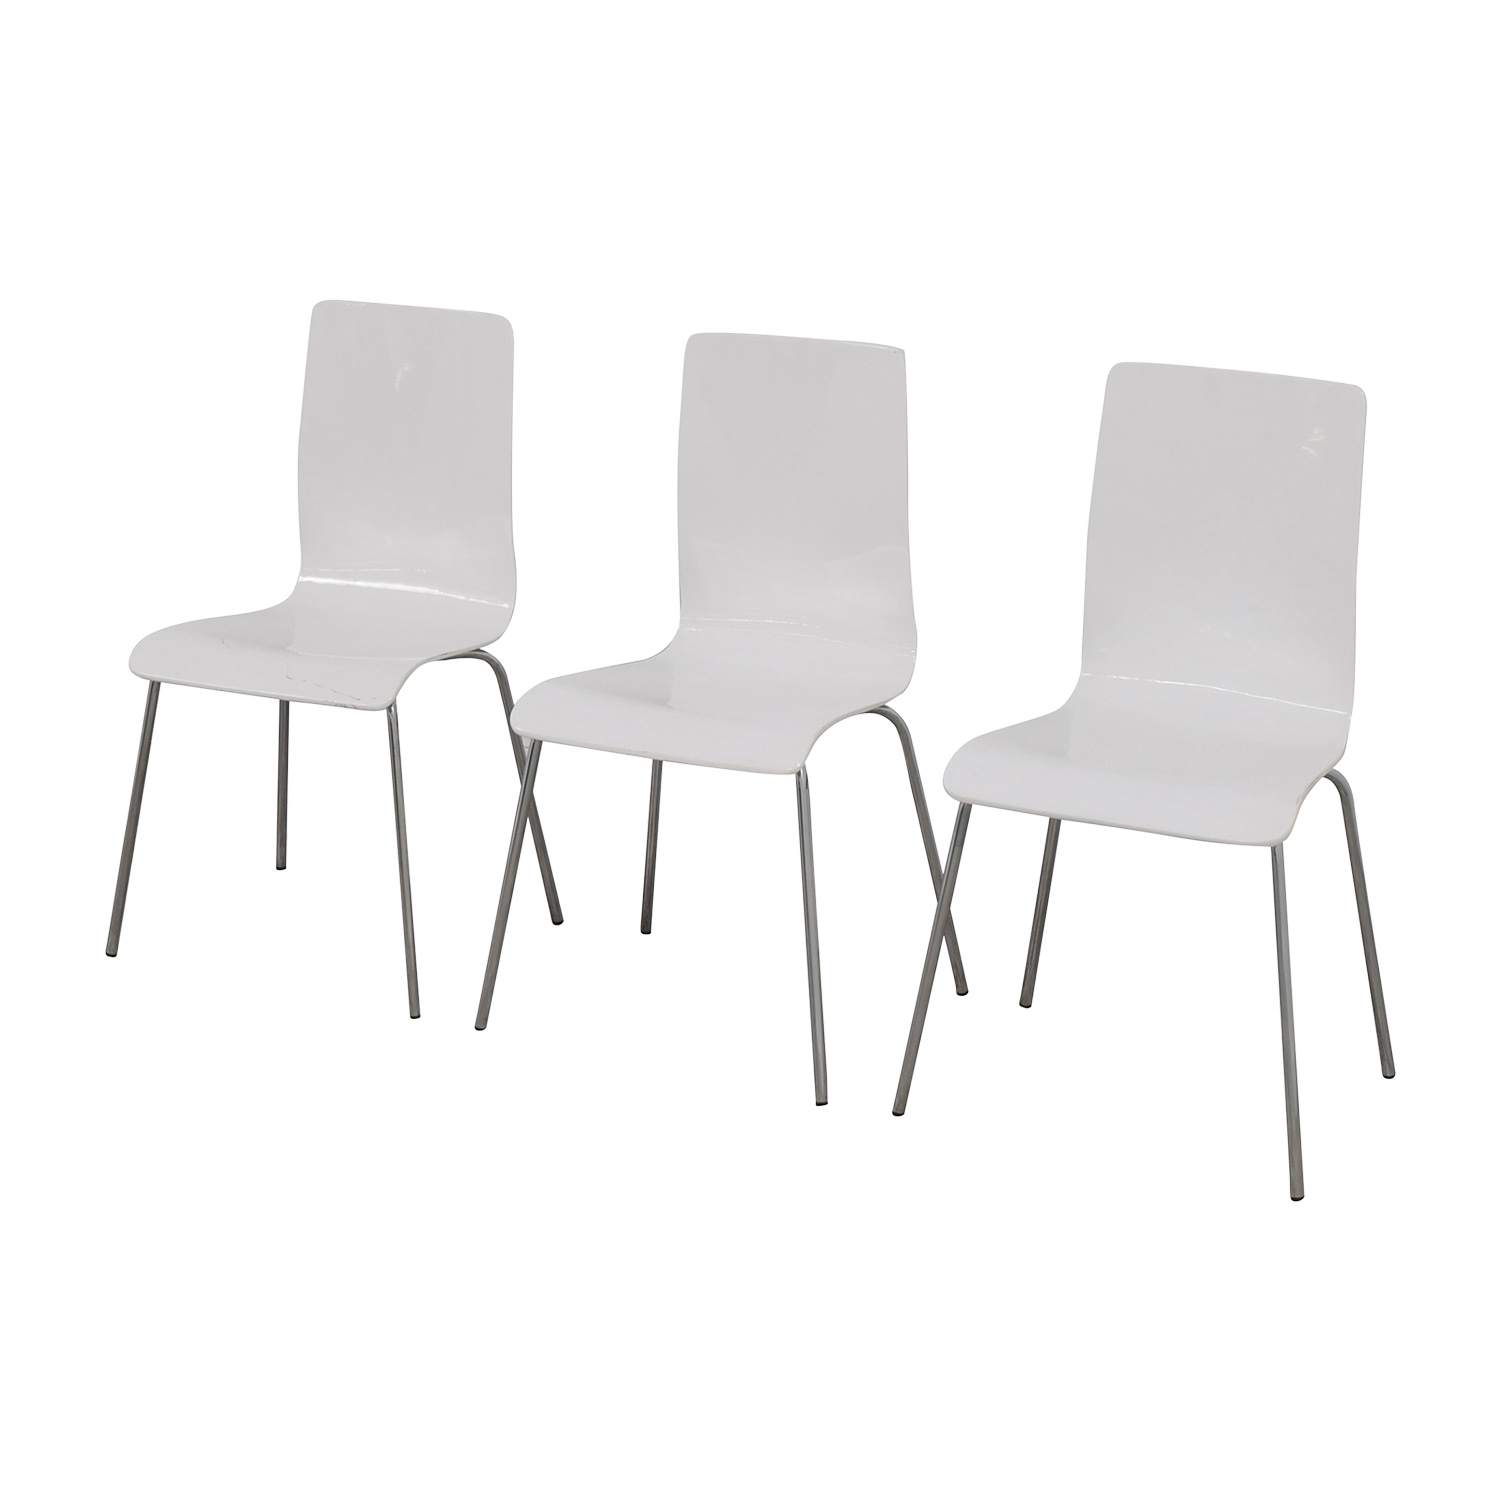 Newspec Newspec Modern Glossy White Dining Chairs for sale